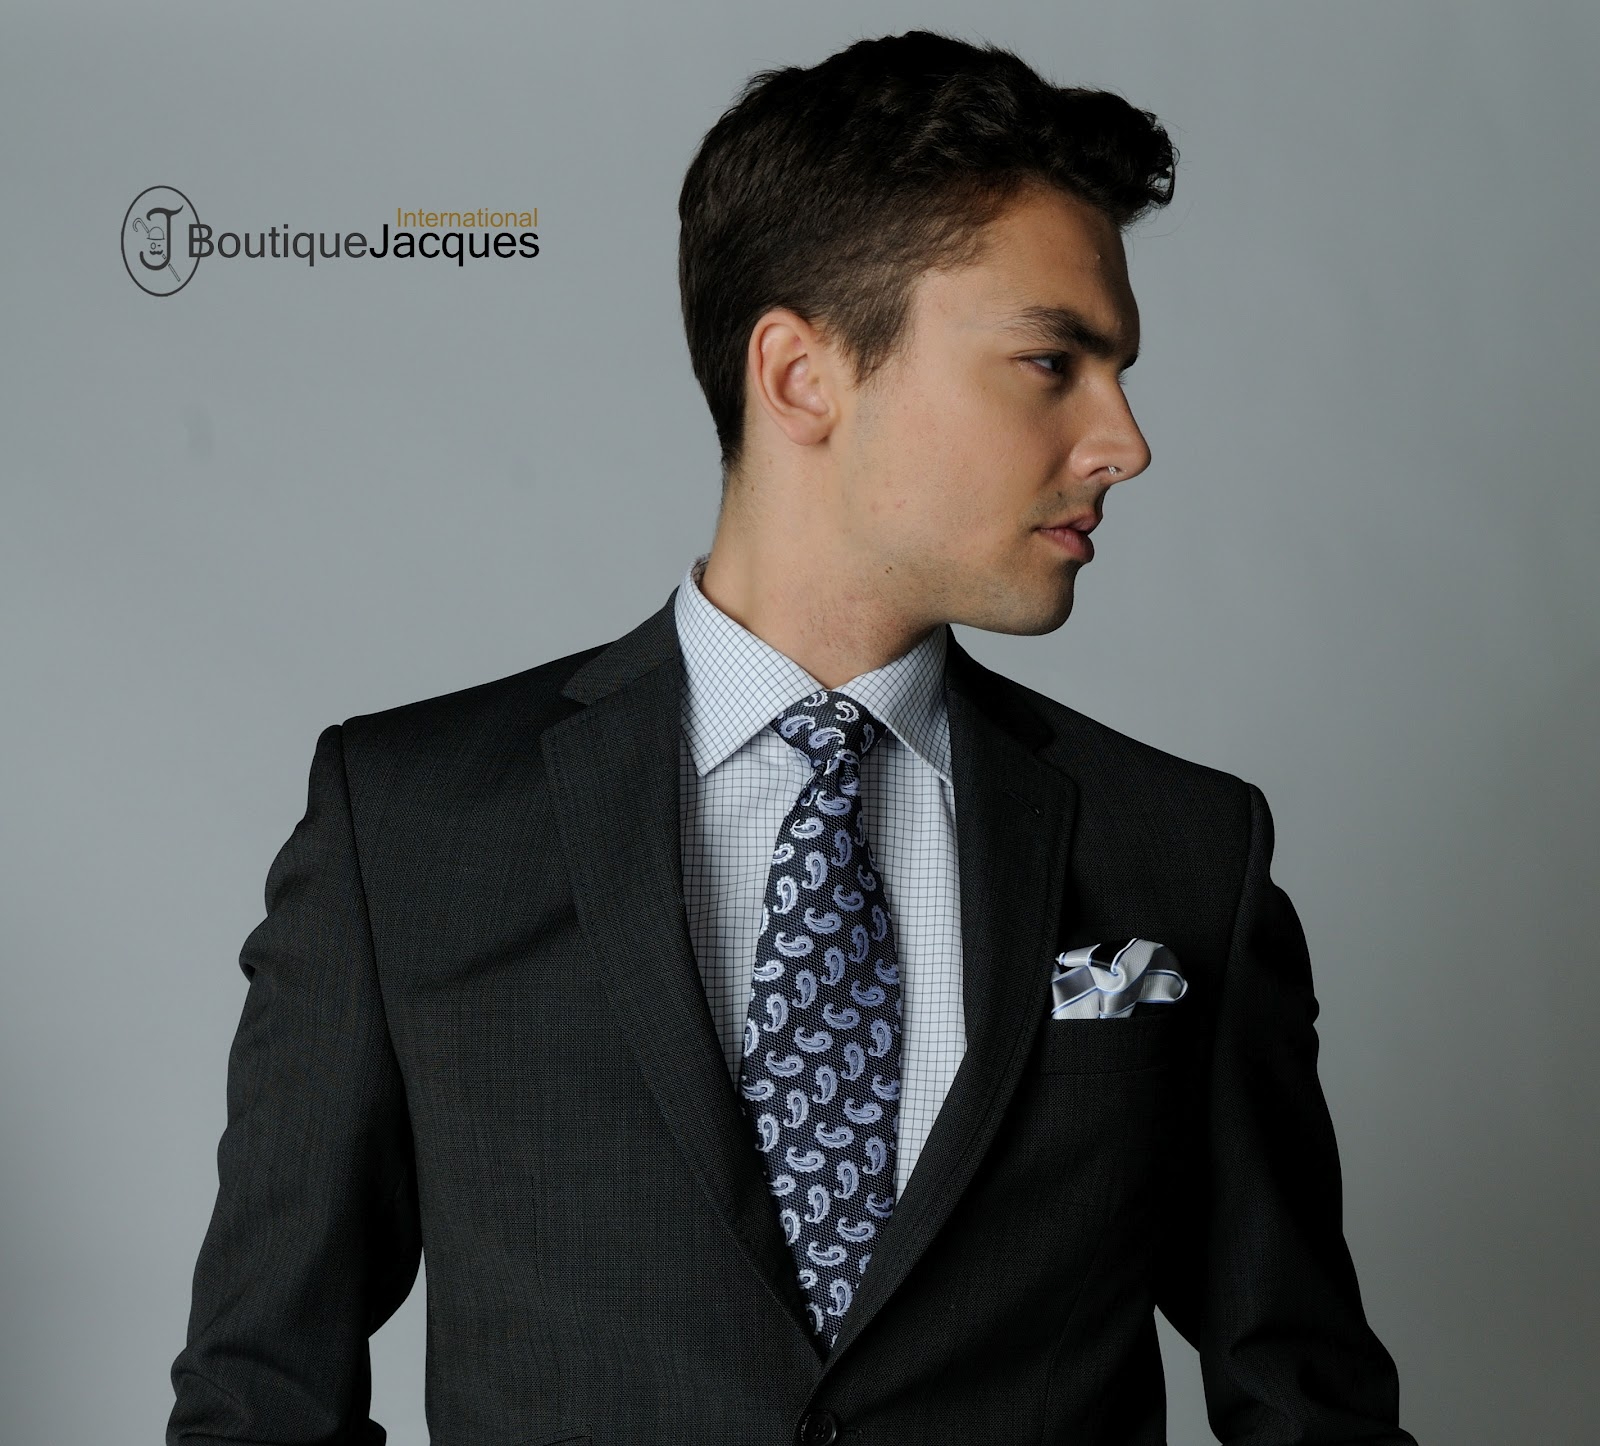 Boutique Jacques Men S Fashion From A To Zegna Blog How The Matching Tie And Pocket Square Edition